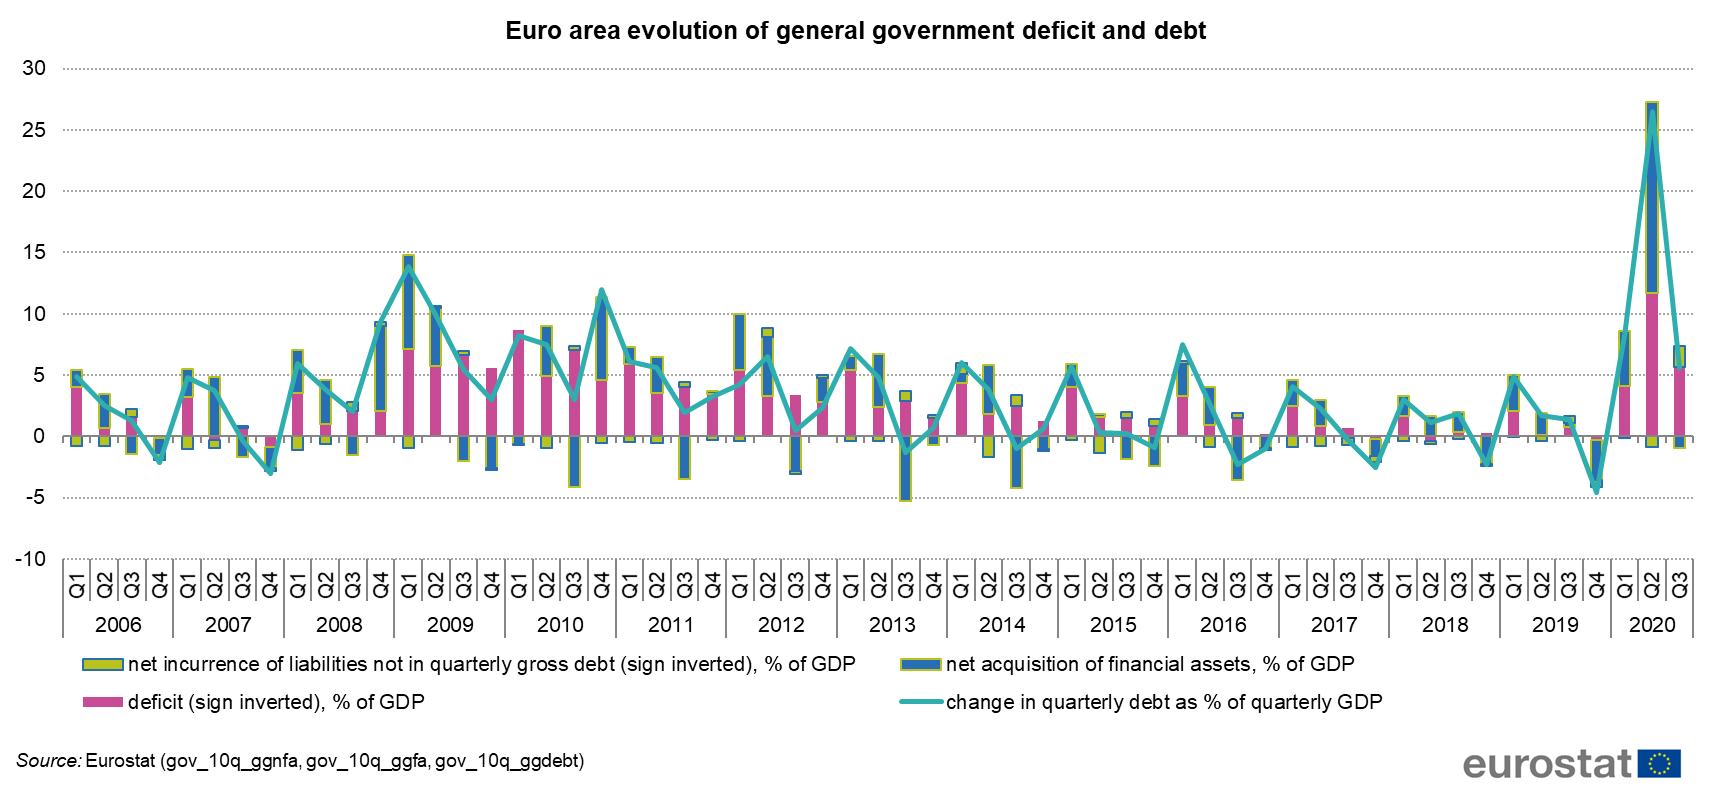 Euro area evolution of general government deficit and debt